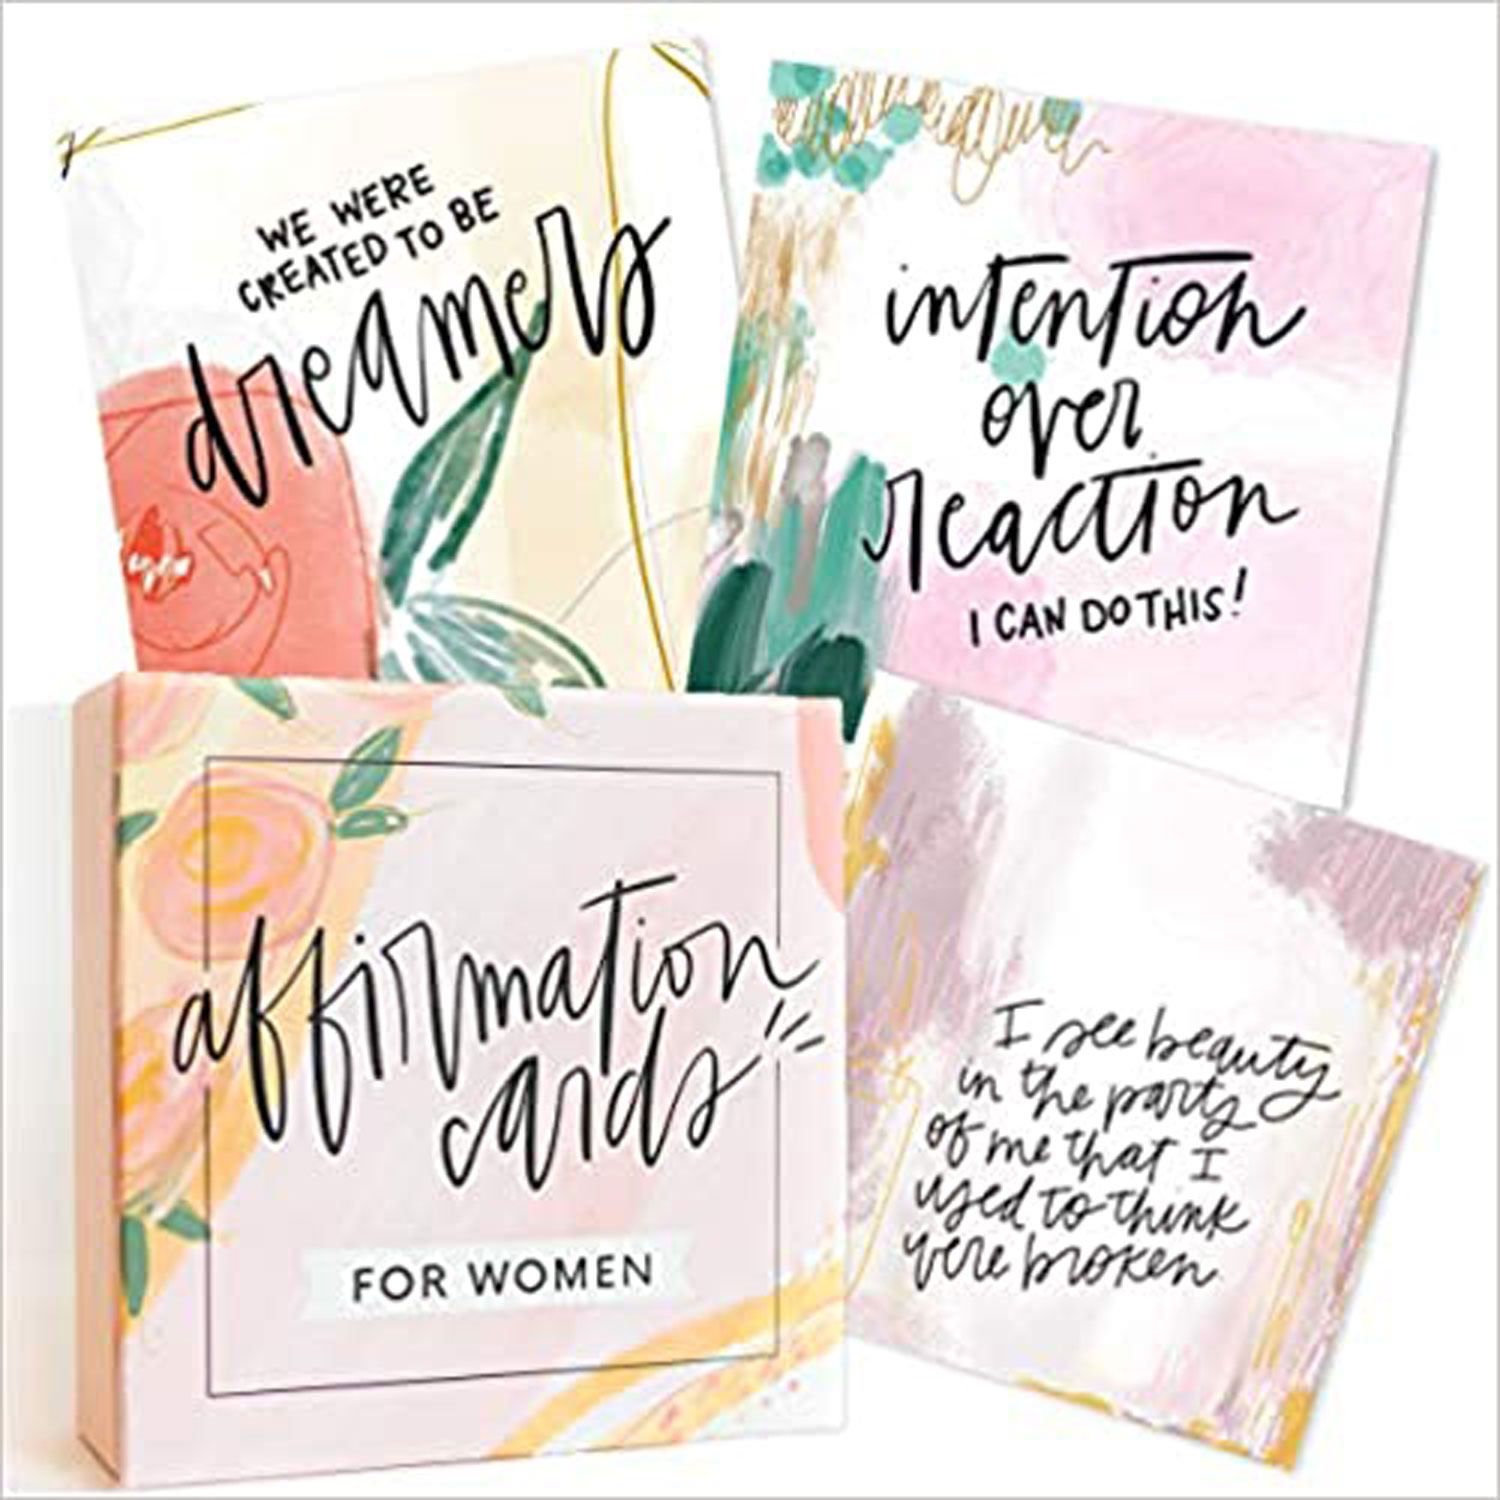 watercolor cards with hand lettering